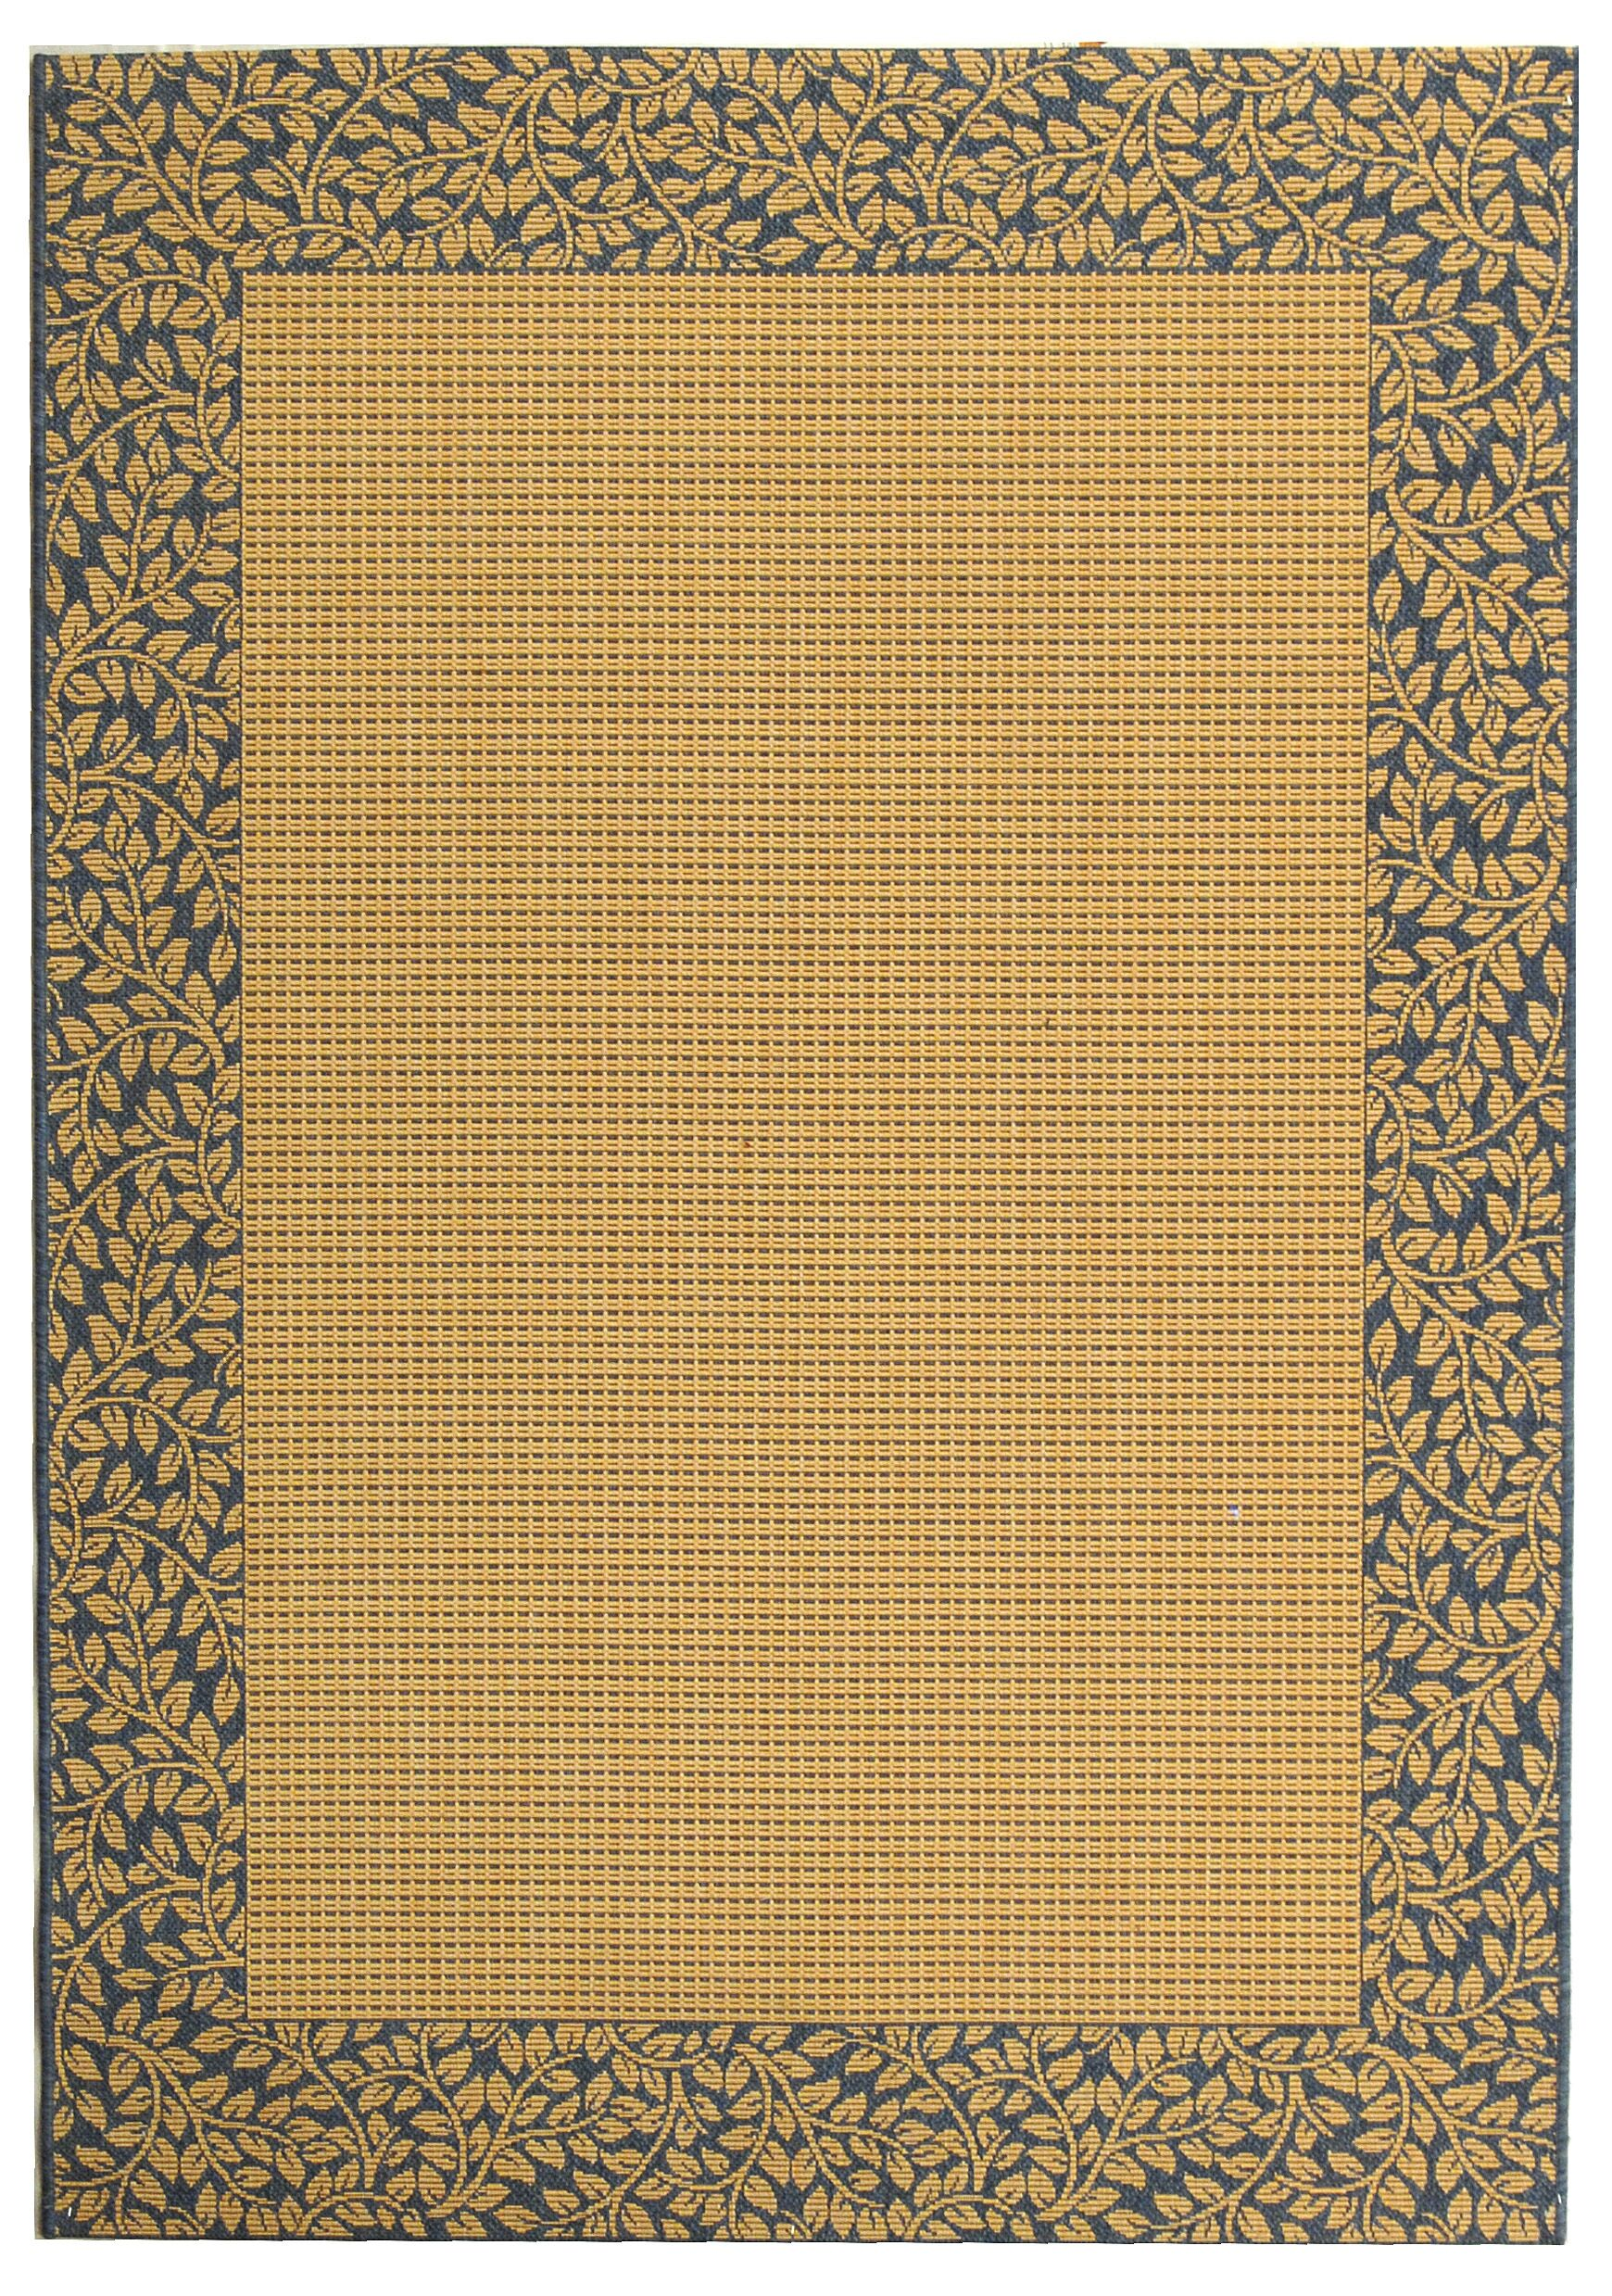 Lippold Brown/Black Outdoor Area Rug Rug Size: Rectangle 4' x 5'7